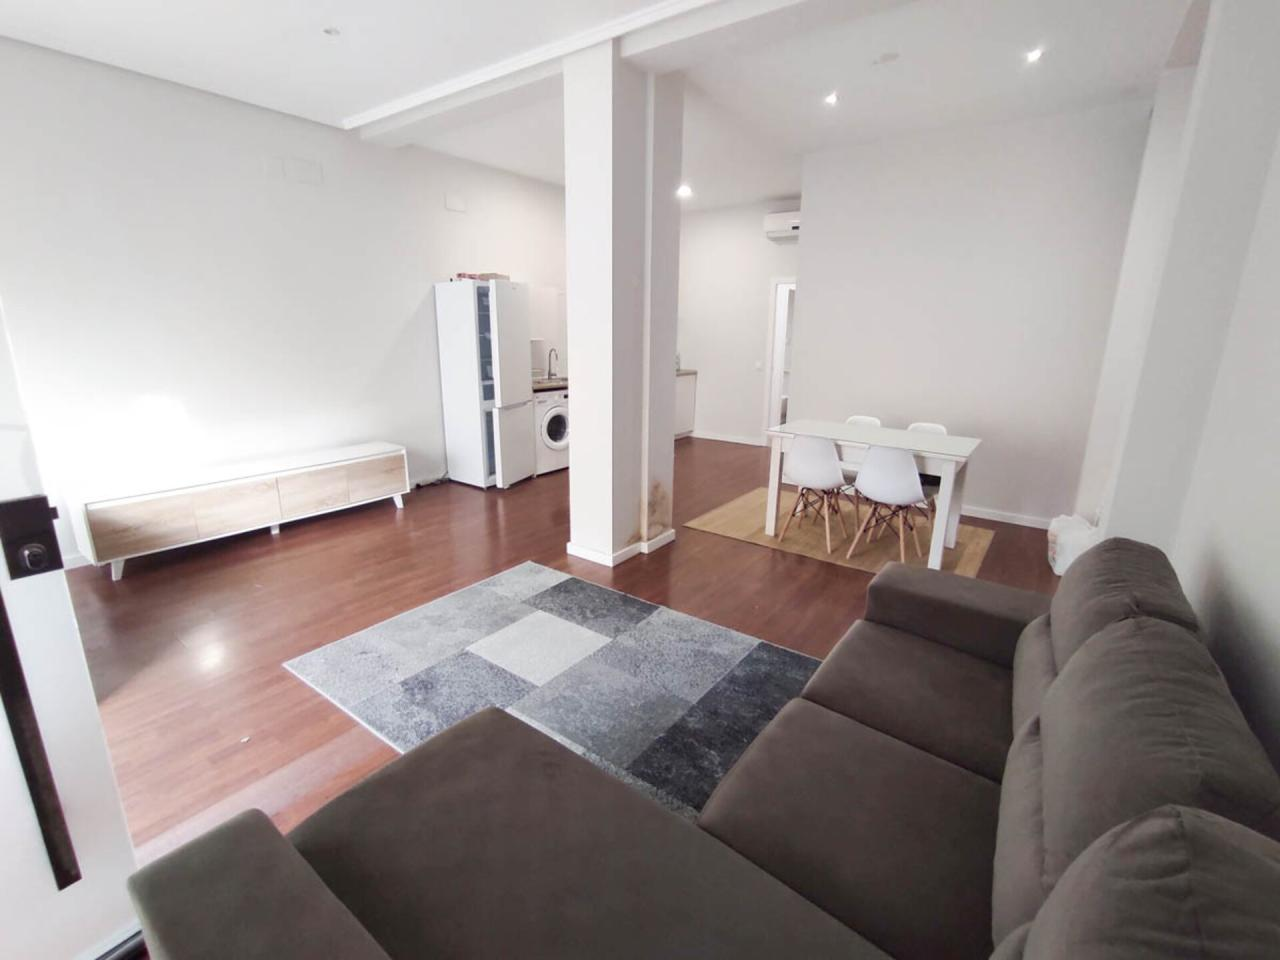 Student room in shared flat for rent in Moncada – Ref. 001237